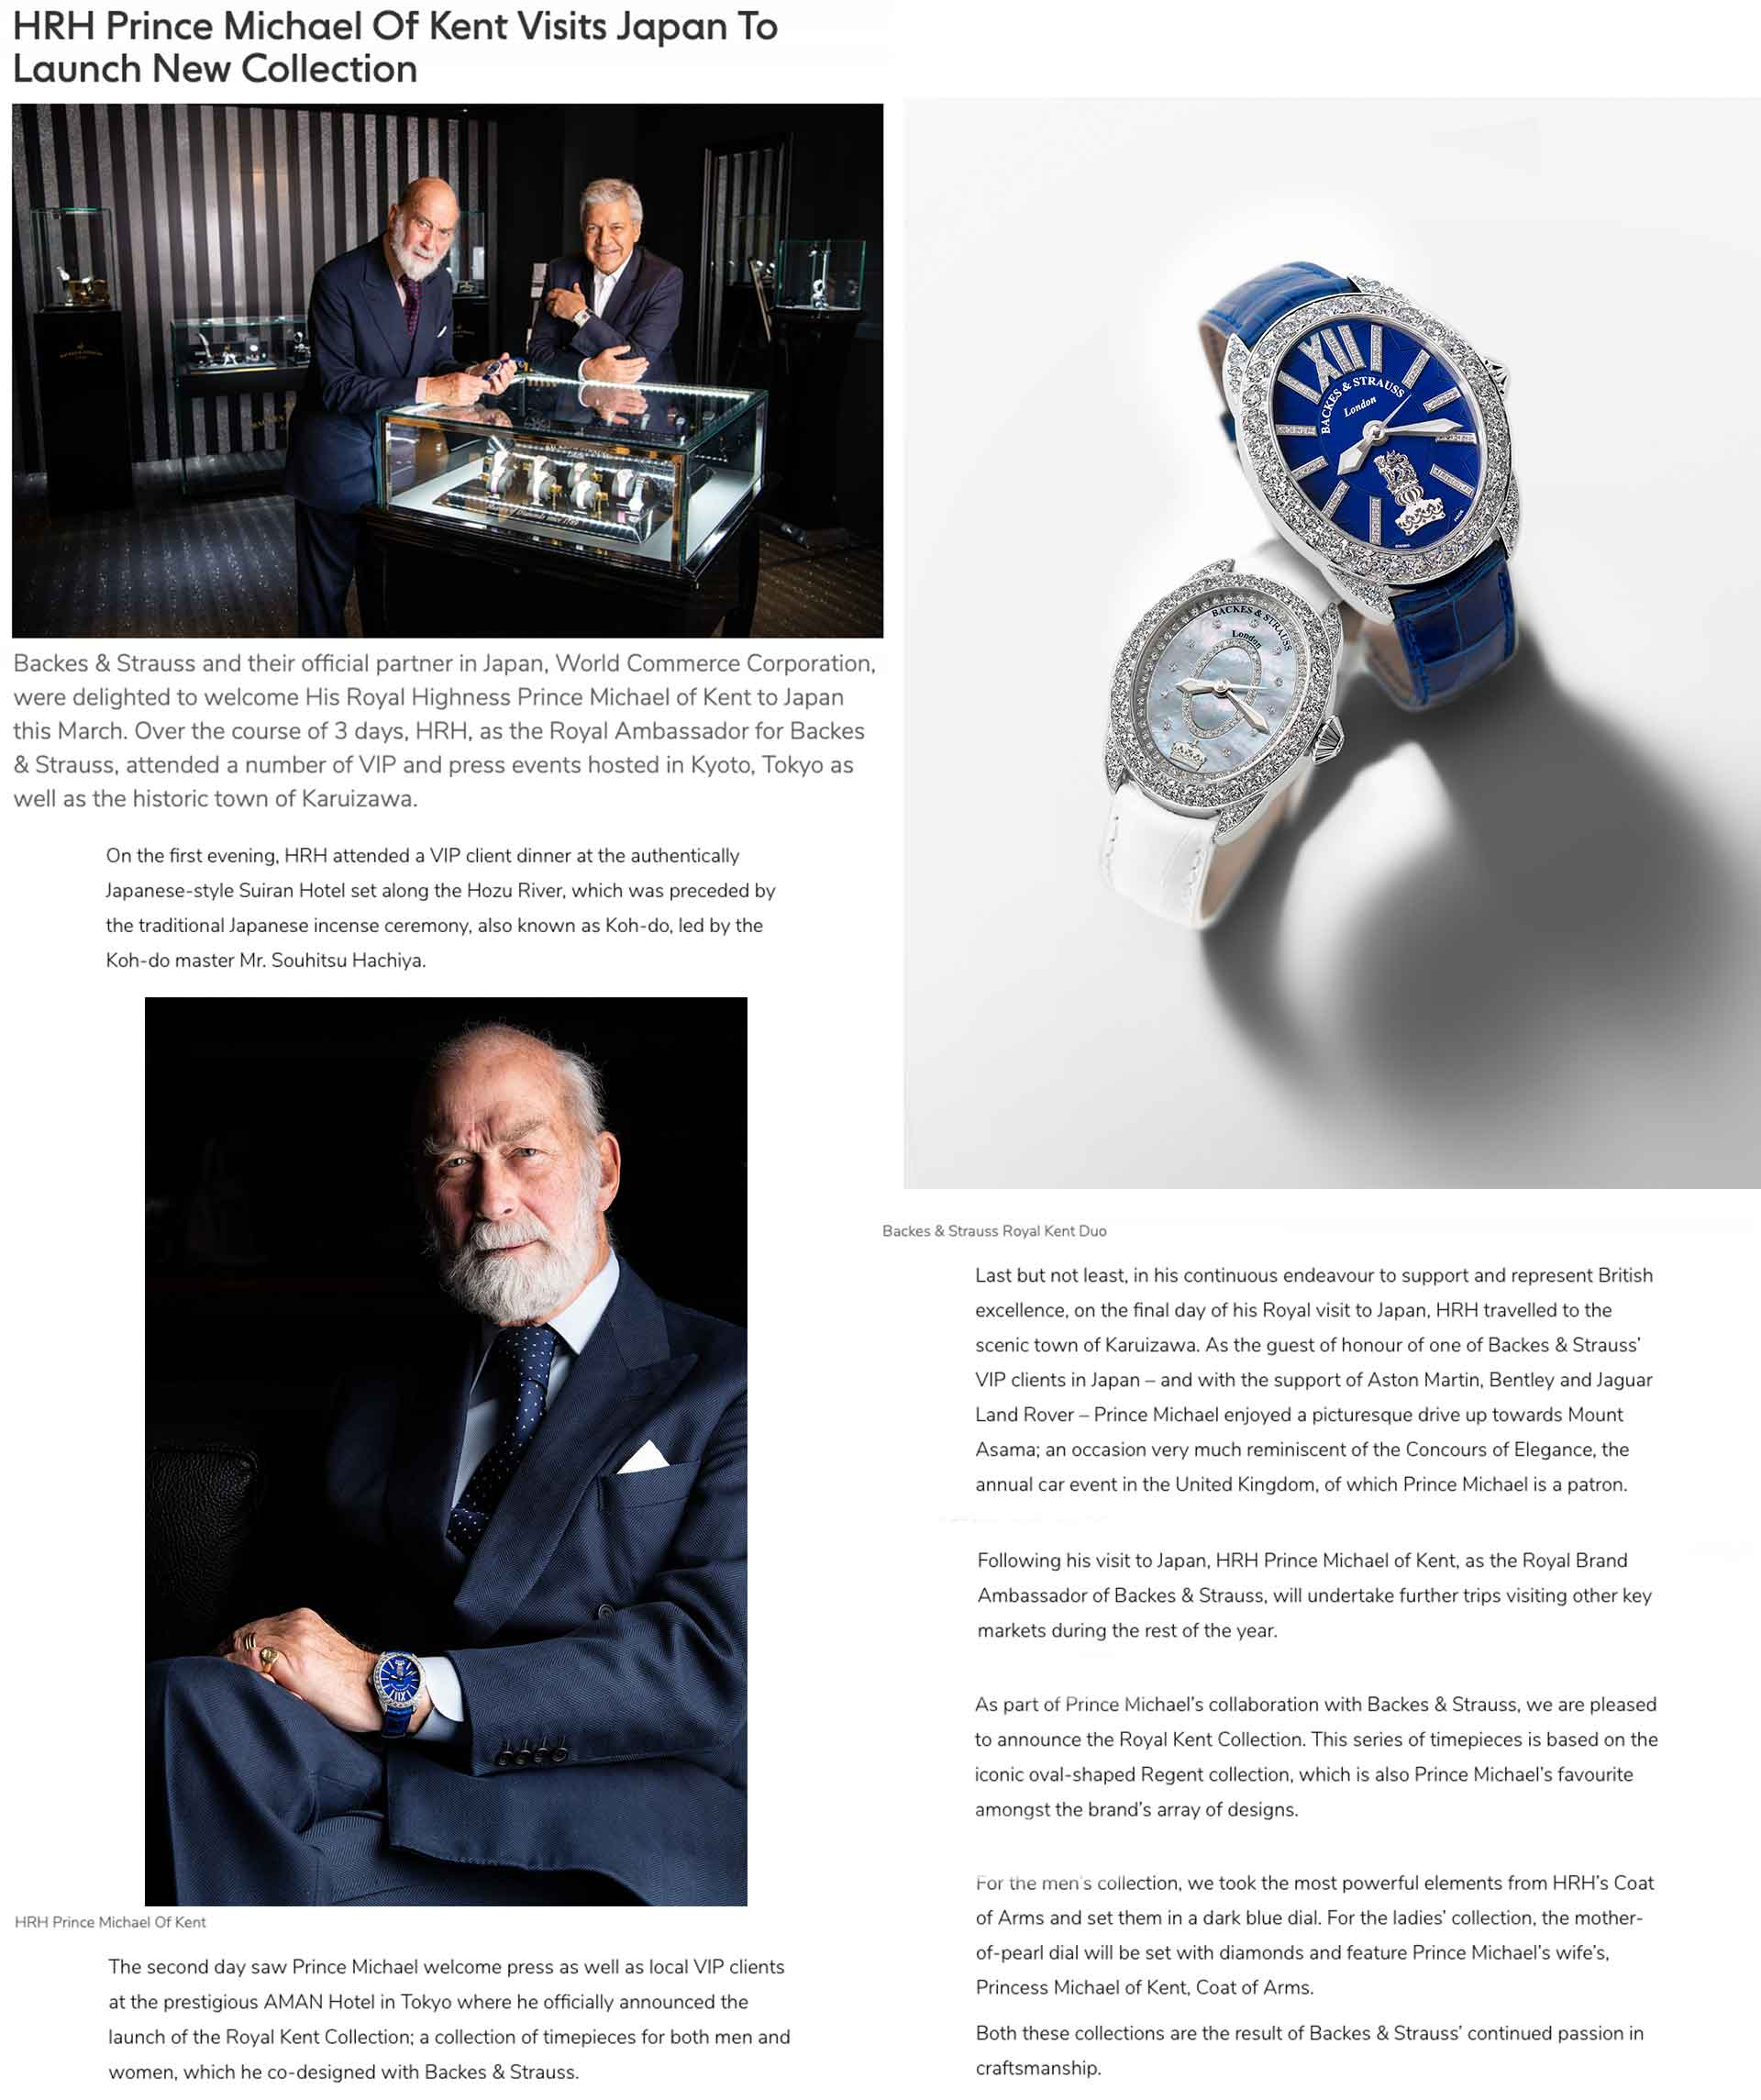 HRH Prince Michael of Kent launching Royal Kent collection watches